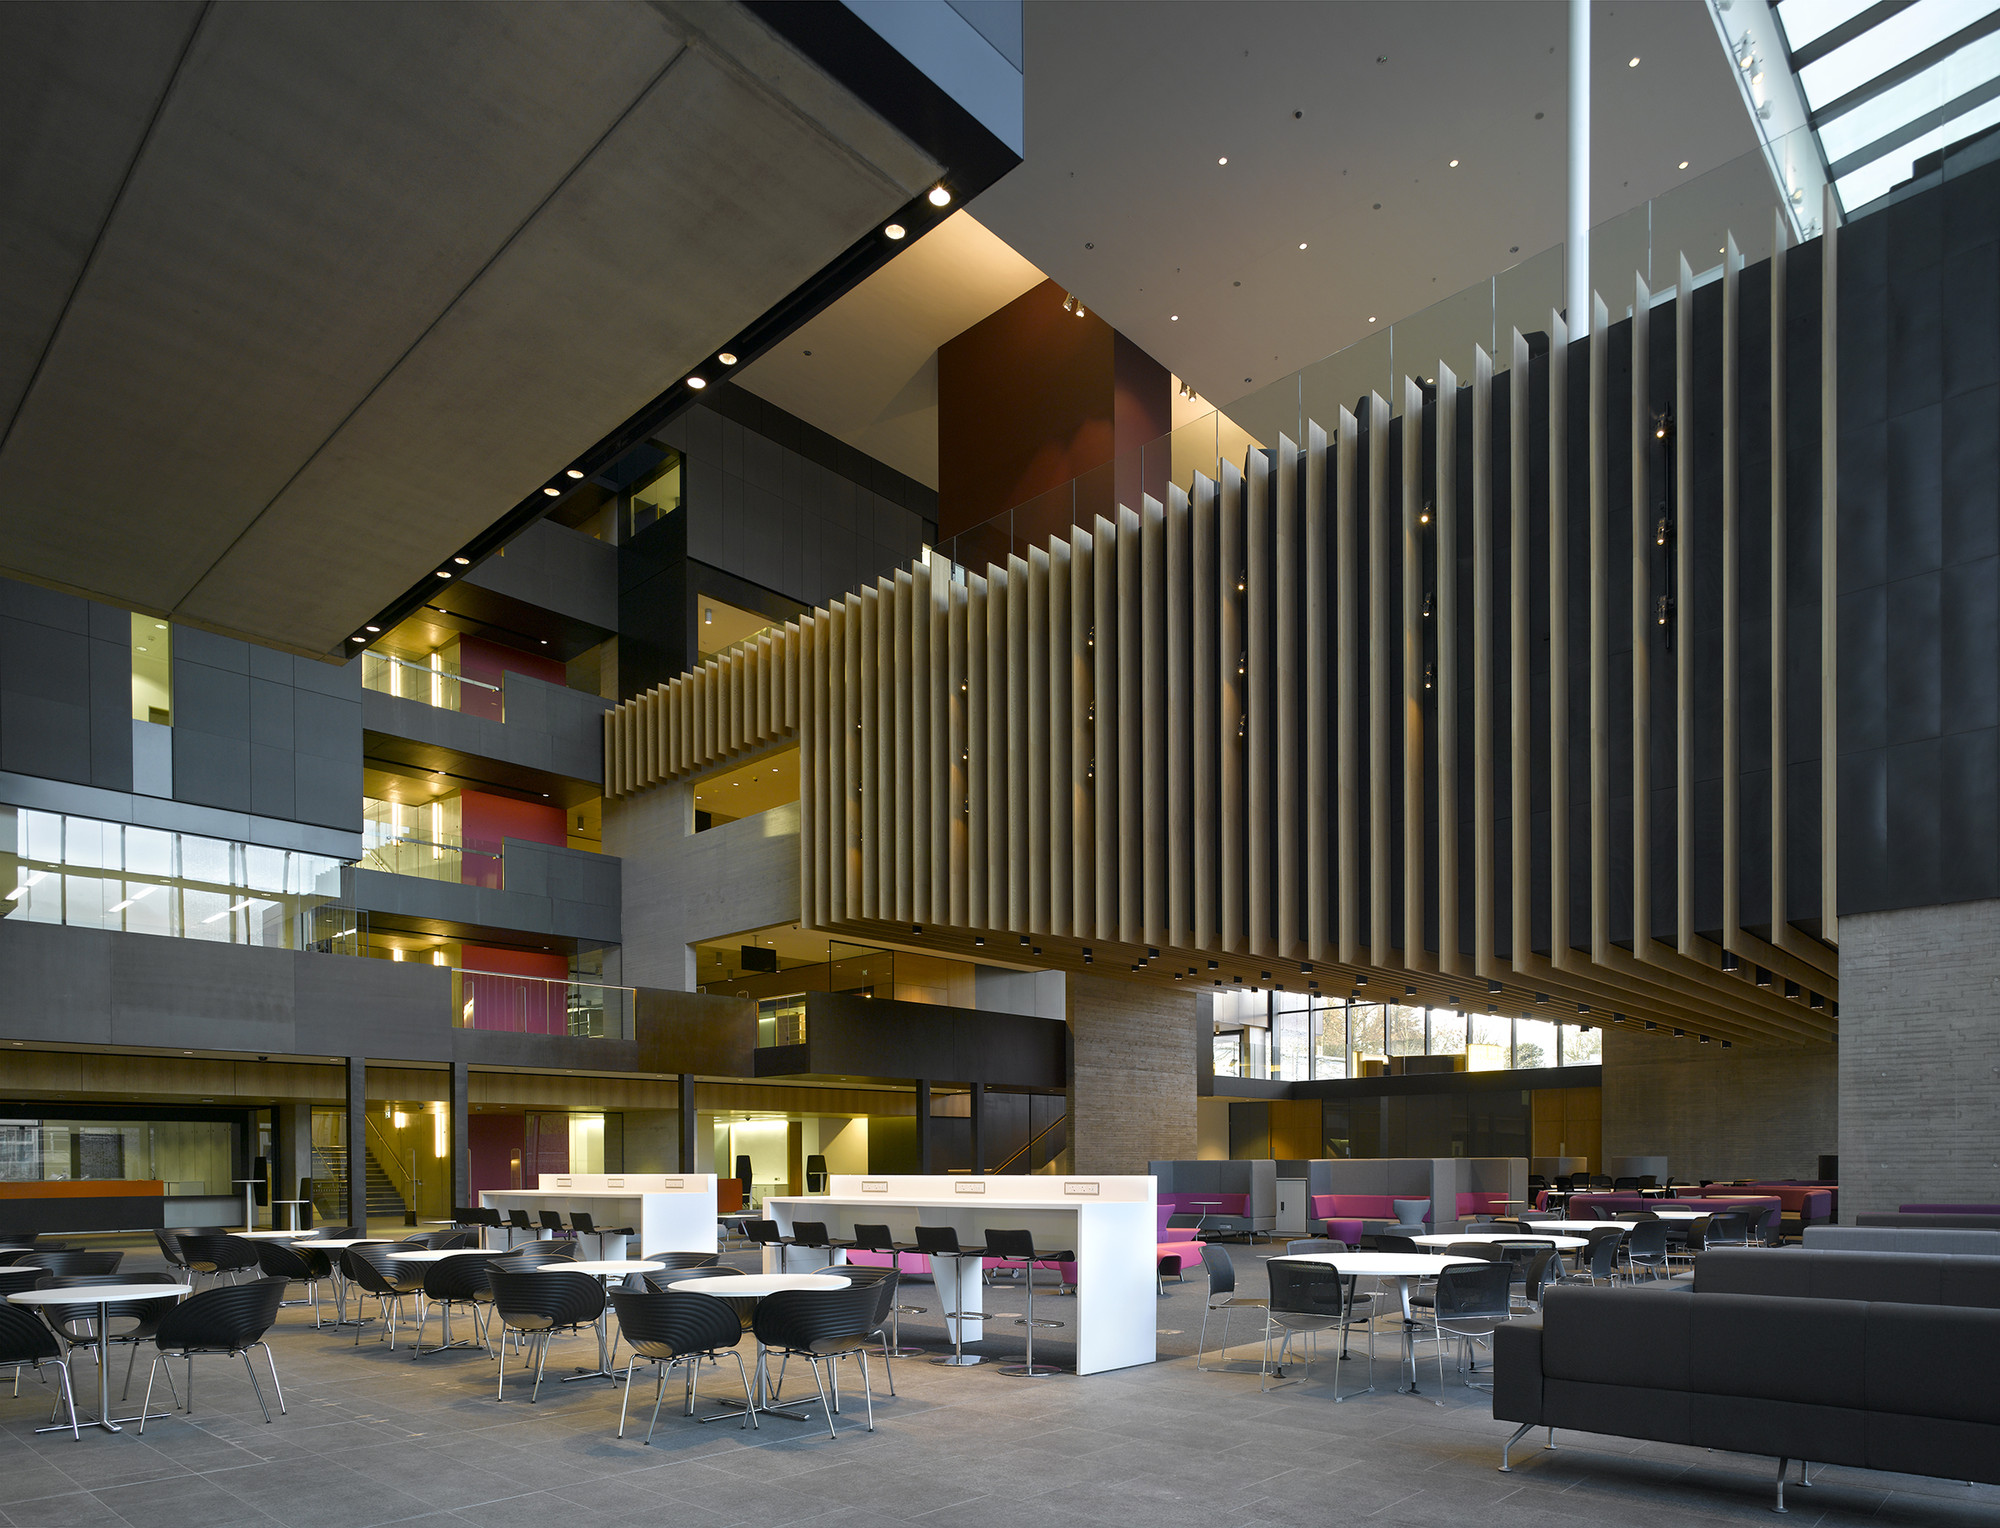 John Henry Brookes And Abercrombie Building Design Engine